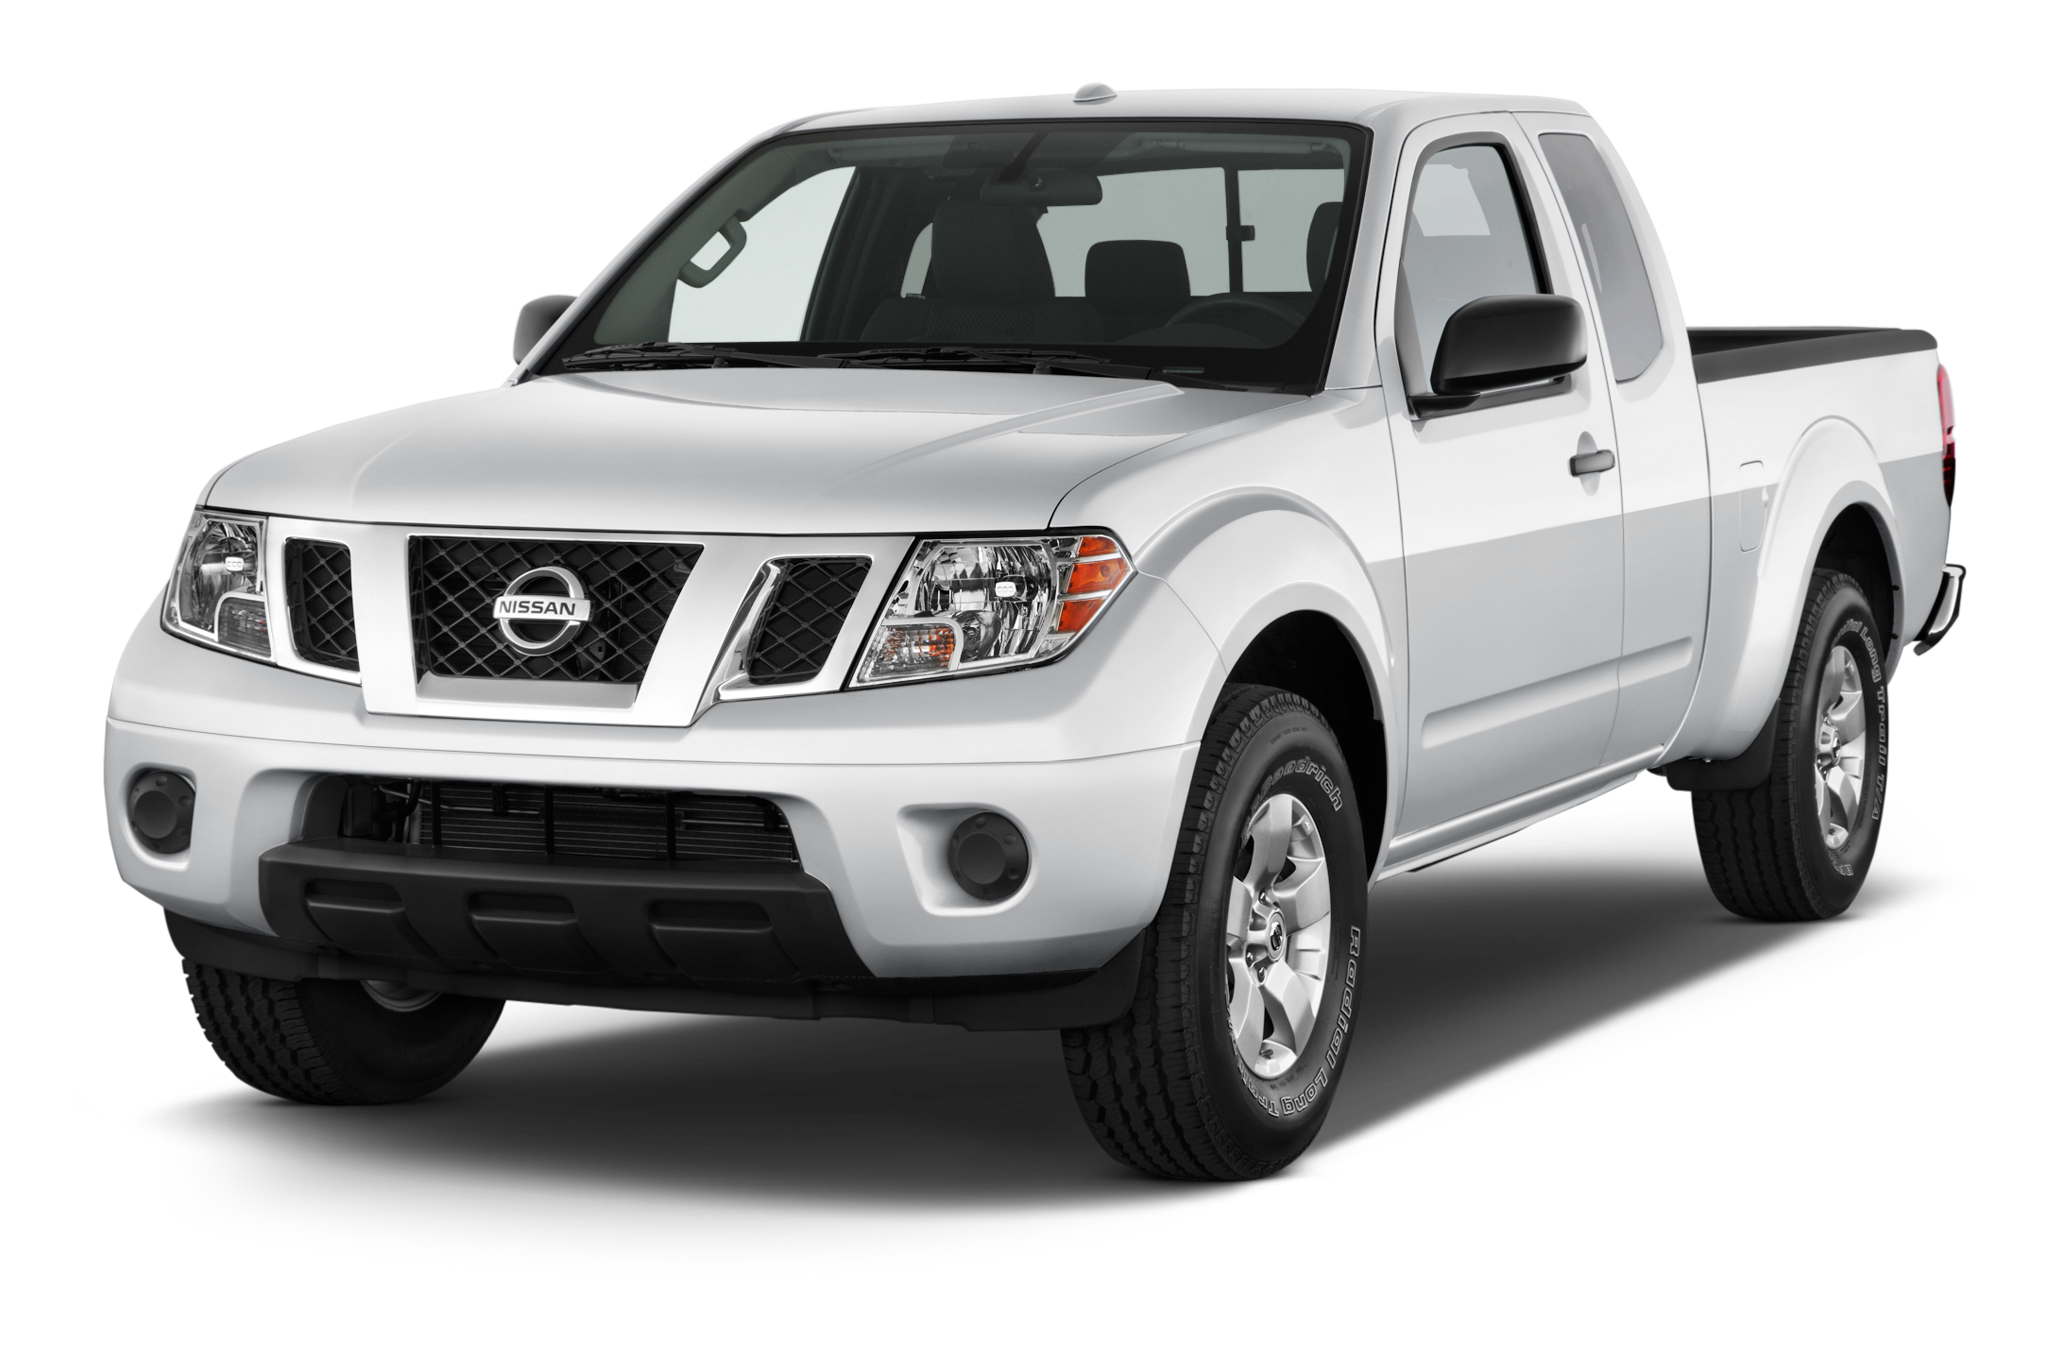 2014 Nissan Frontier 2.5 S King Cab 4X2 MT Pricing - MSN Autos